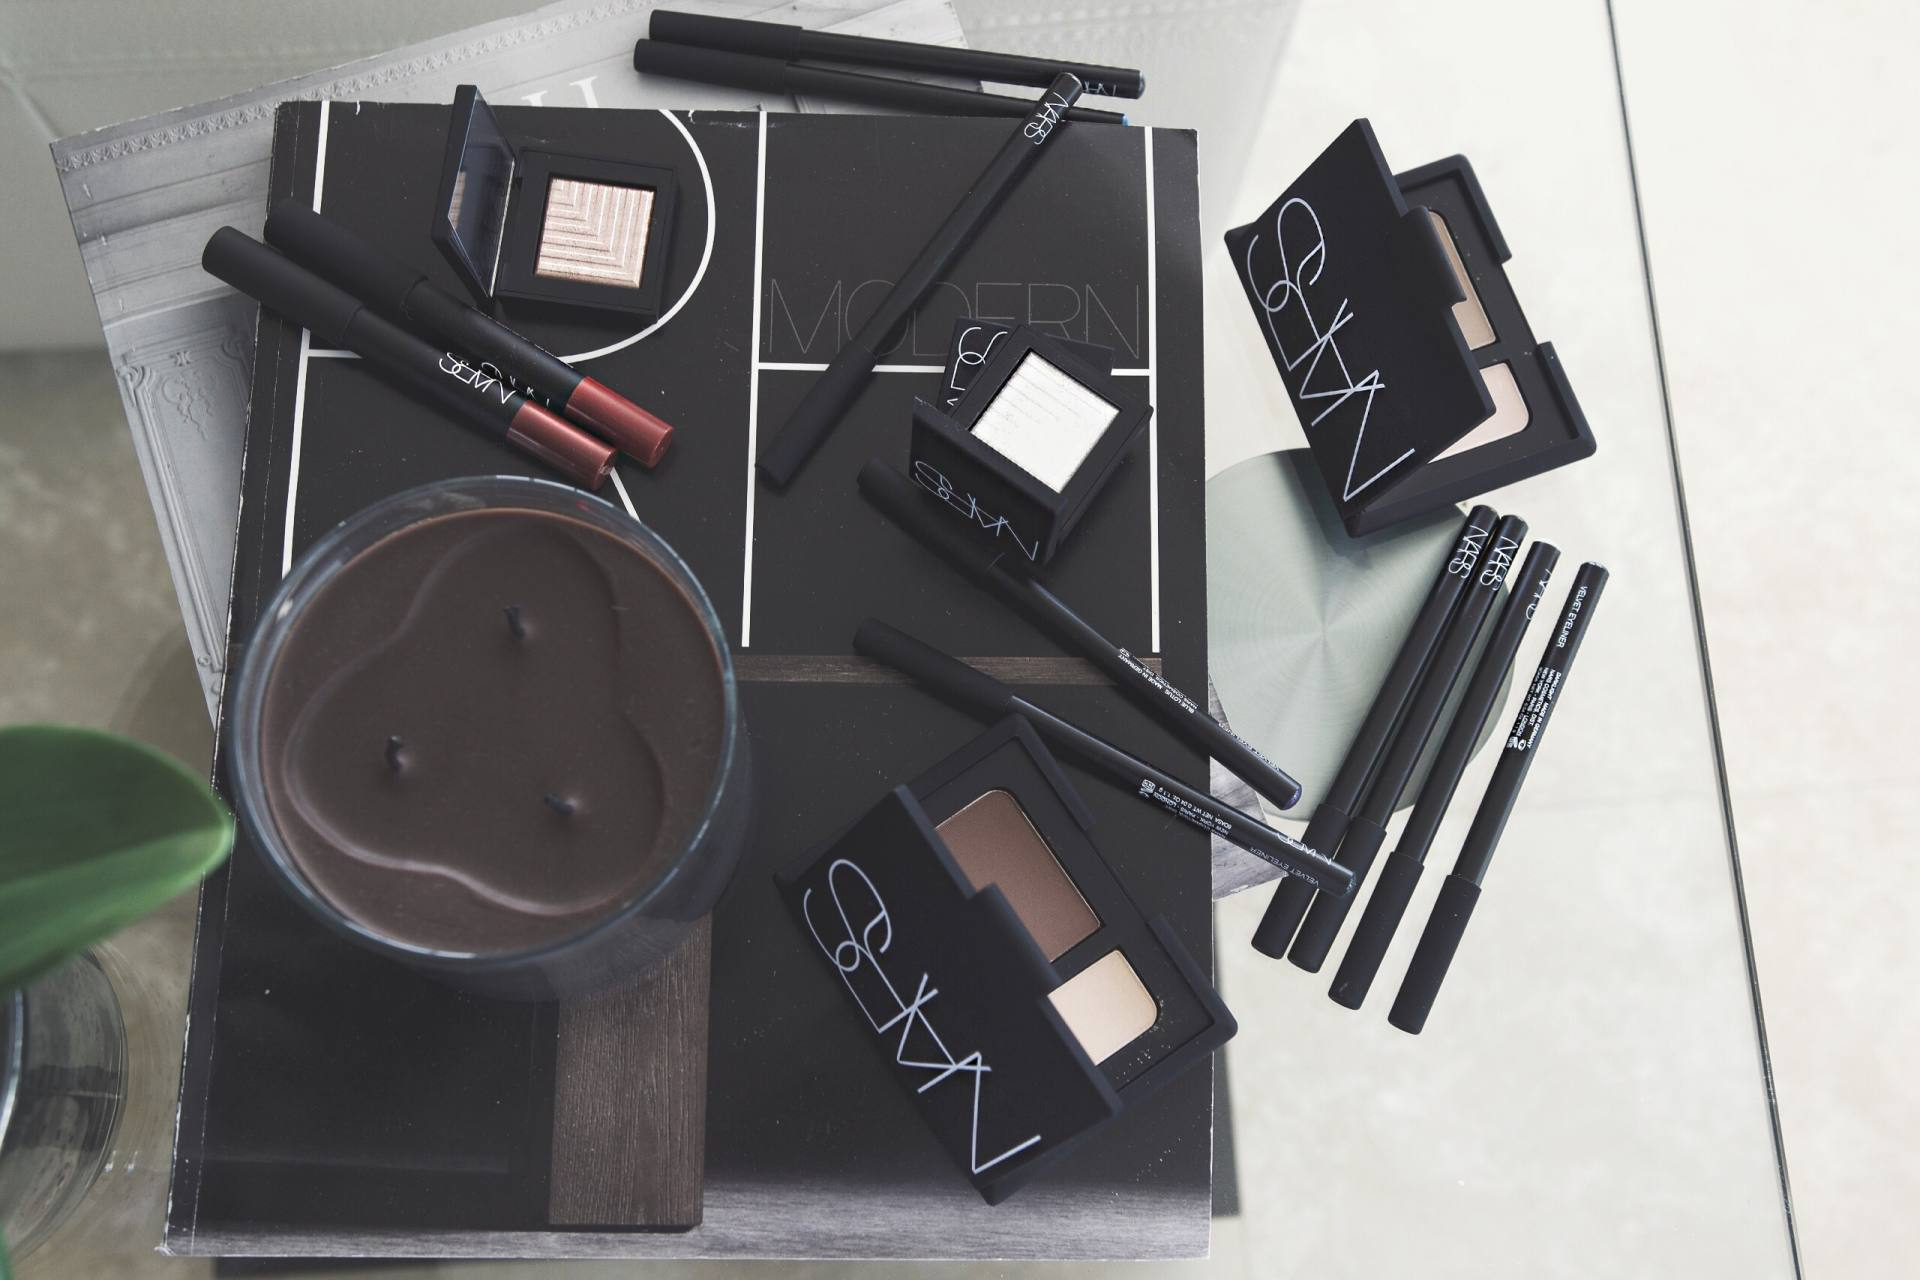 nars makeup closeup